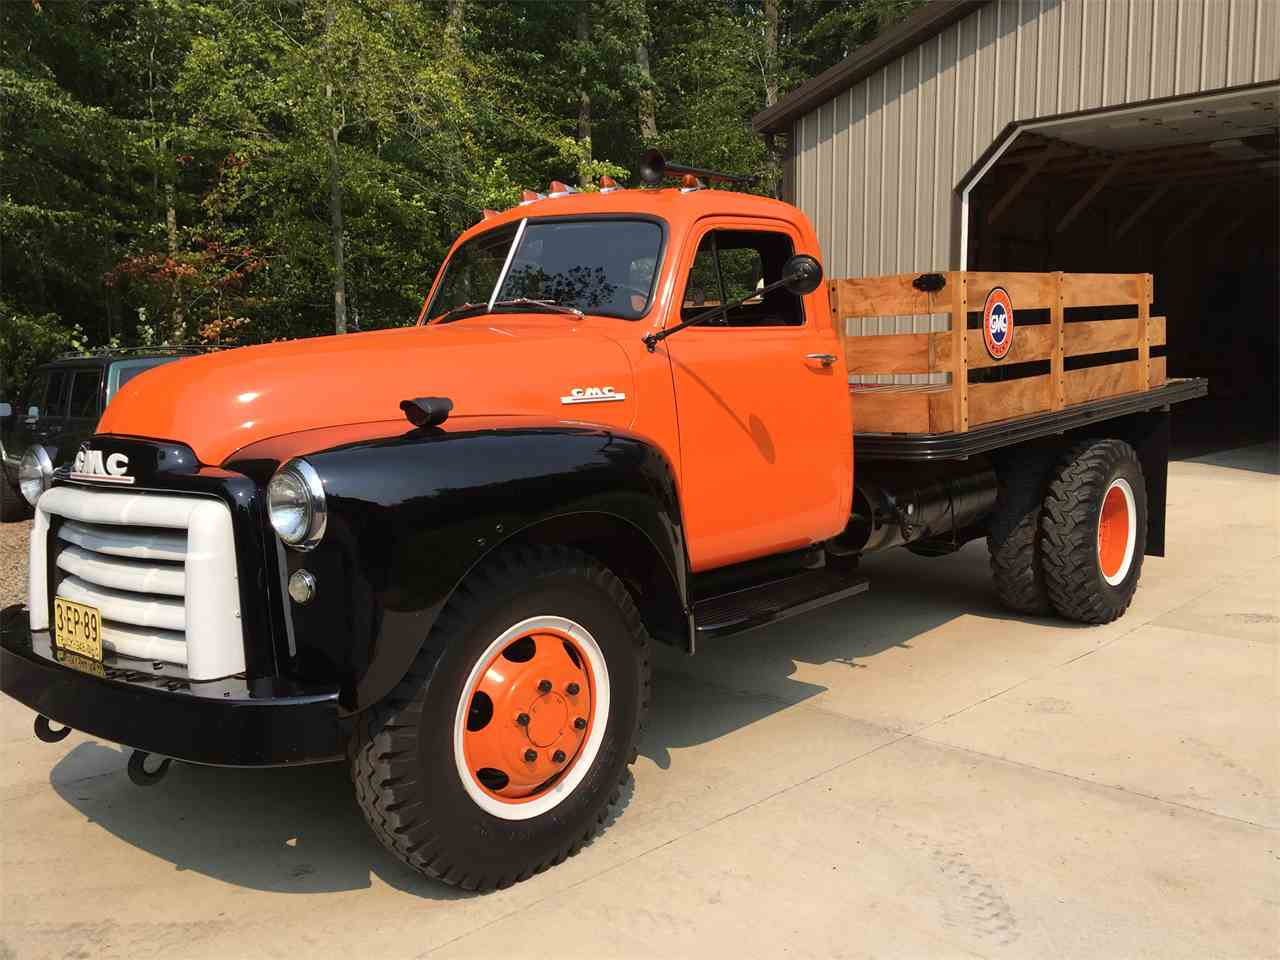 Motorcycles For Sale Ohio >> 1948 GMC Truck for Sale | ClassicCars.com | CC-1024879